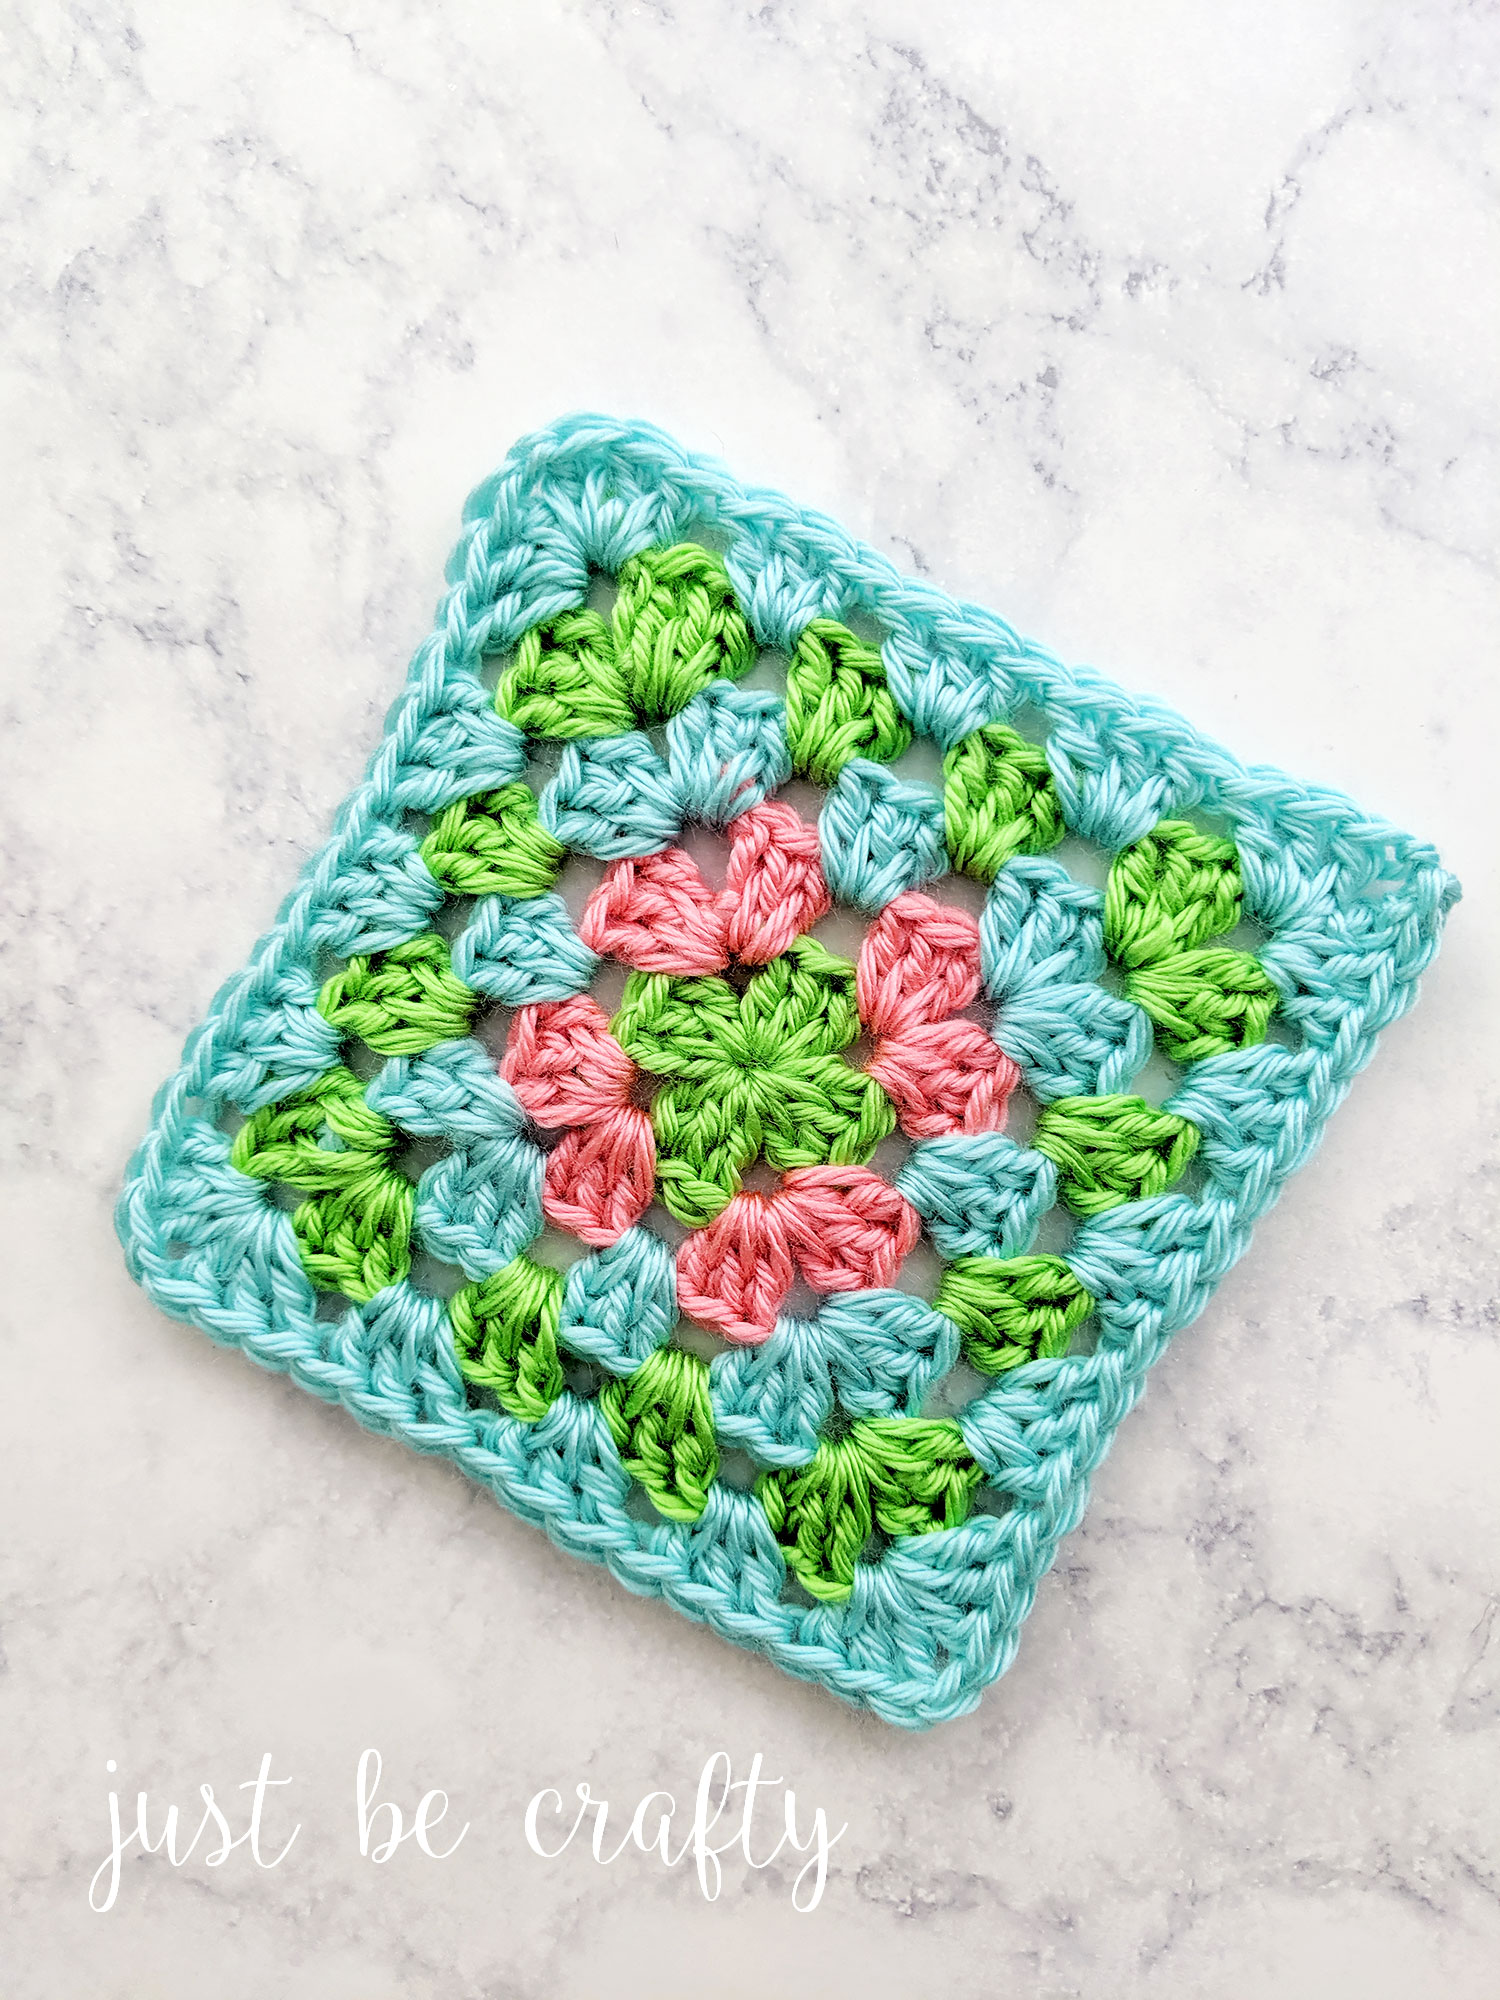 Granny Square Tutorial | Crochet Tutorial by Just Be Crafty